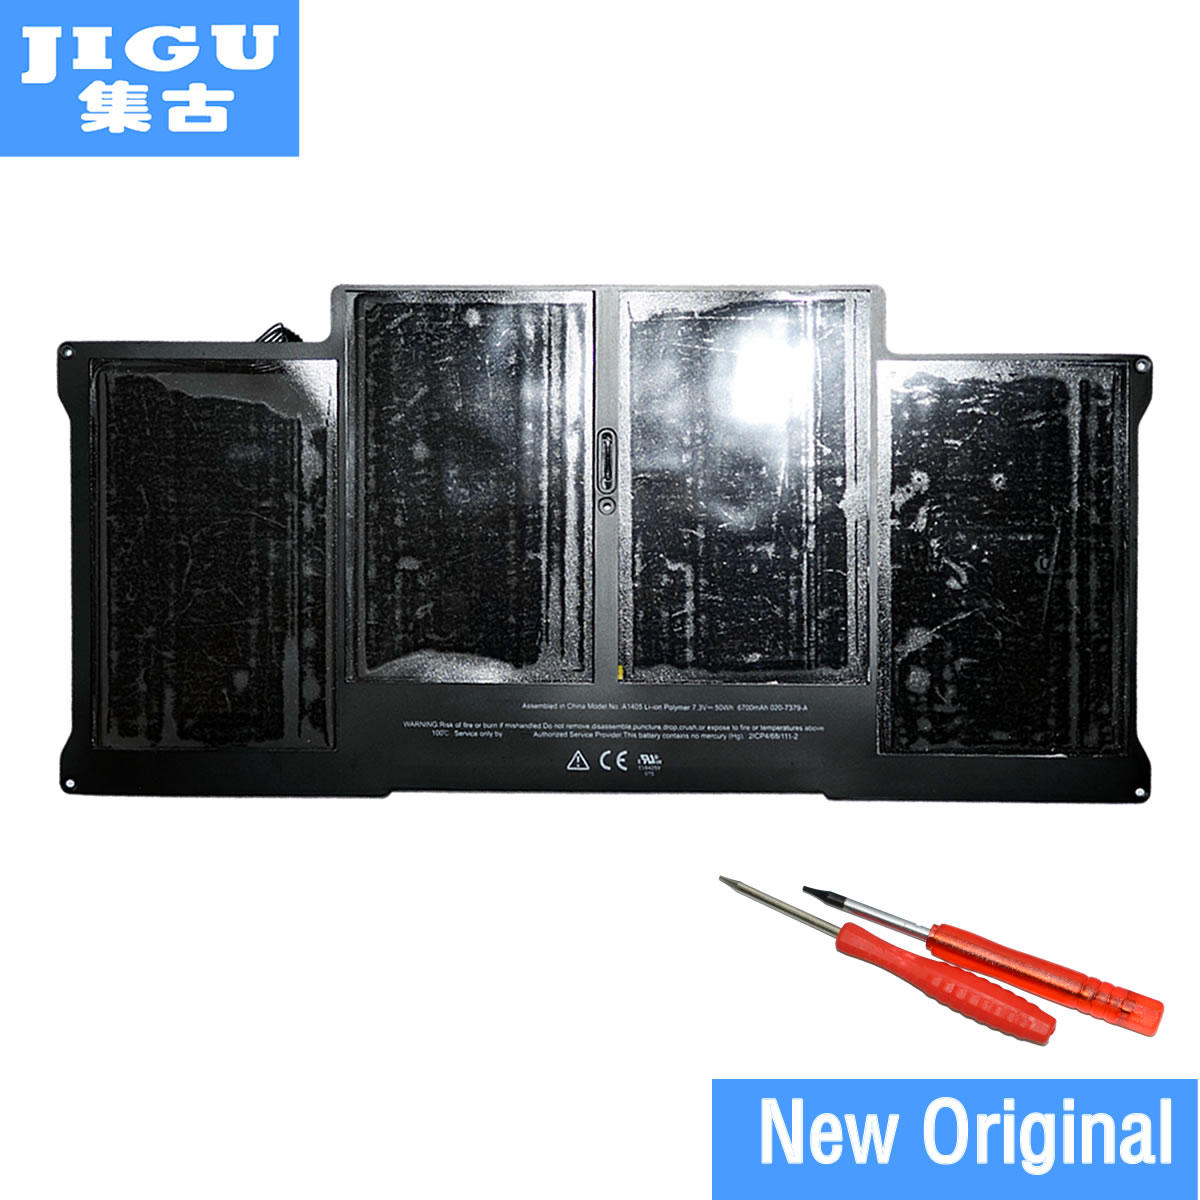 JIGU Brand New Original Genuine Battery A1405 For MacBook Air 13 A1369 Mid 2011 A1466 Mid 2012, equipped with two screwdrivers hsw rechargeable battery for apple for macbook air core i5 1 6 13 a1369 mid 2011 a1405 a1466 2012